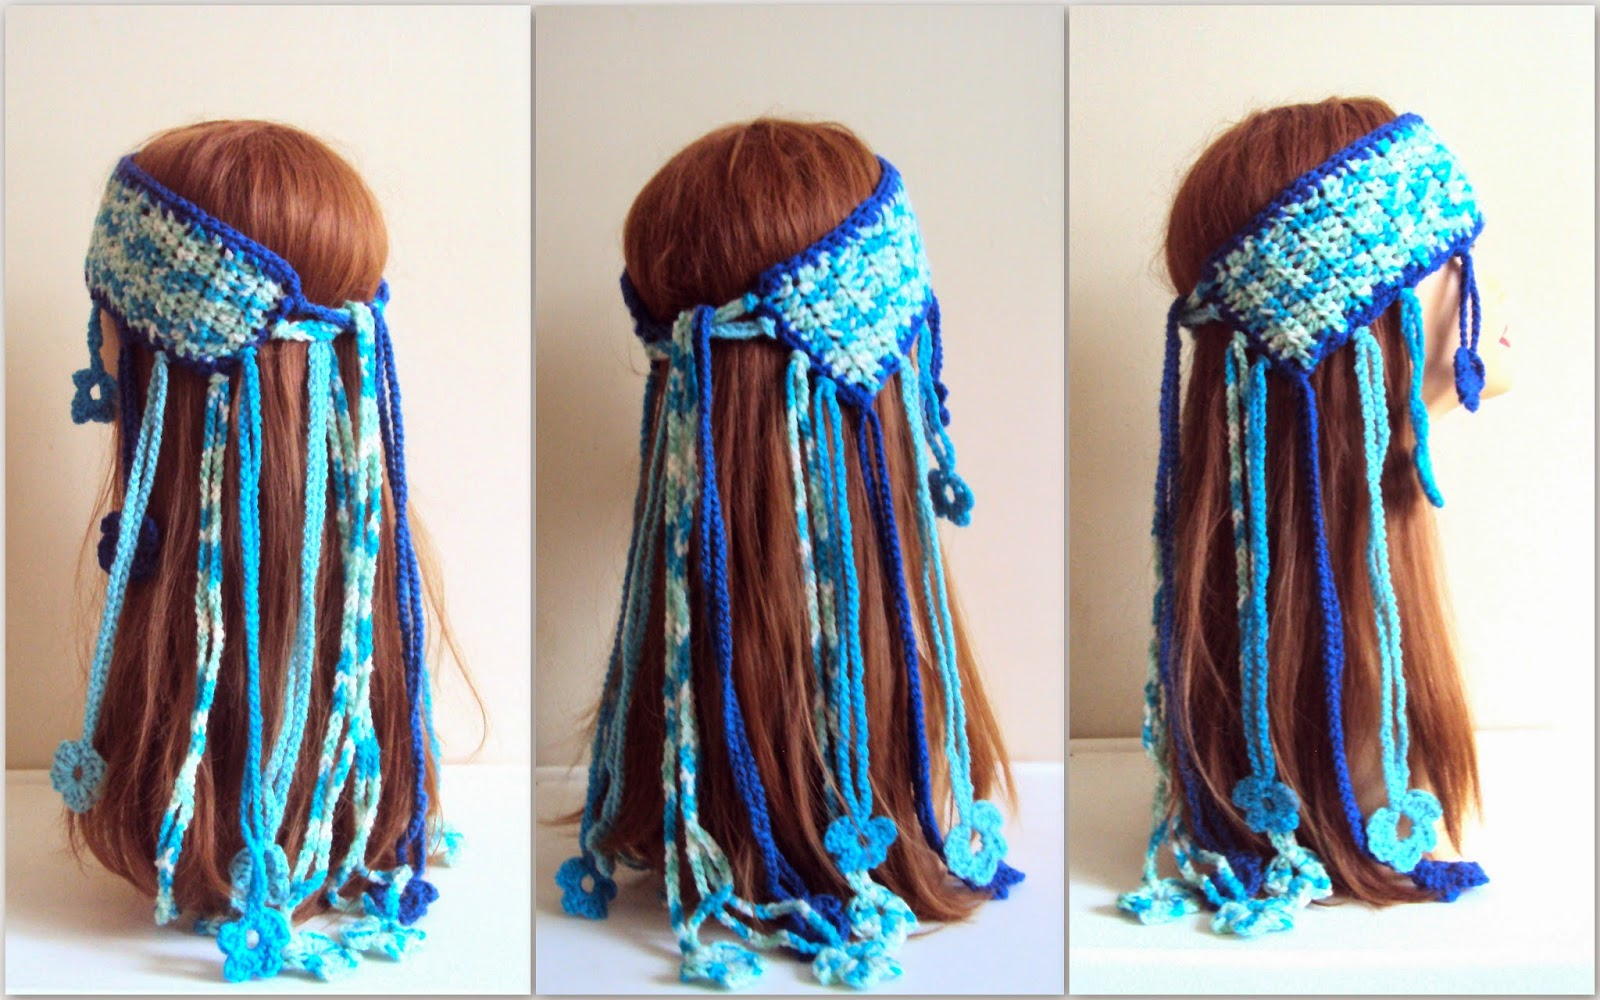 https://www.etsy.com/listing/227936333/the-gypsy-thing-blue?ref=shop_home_active_7